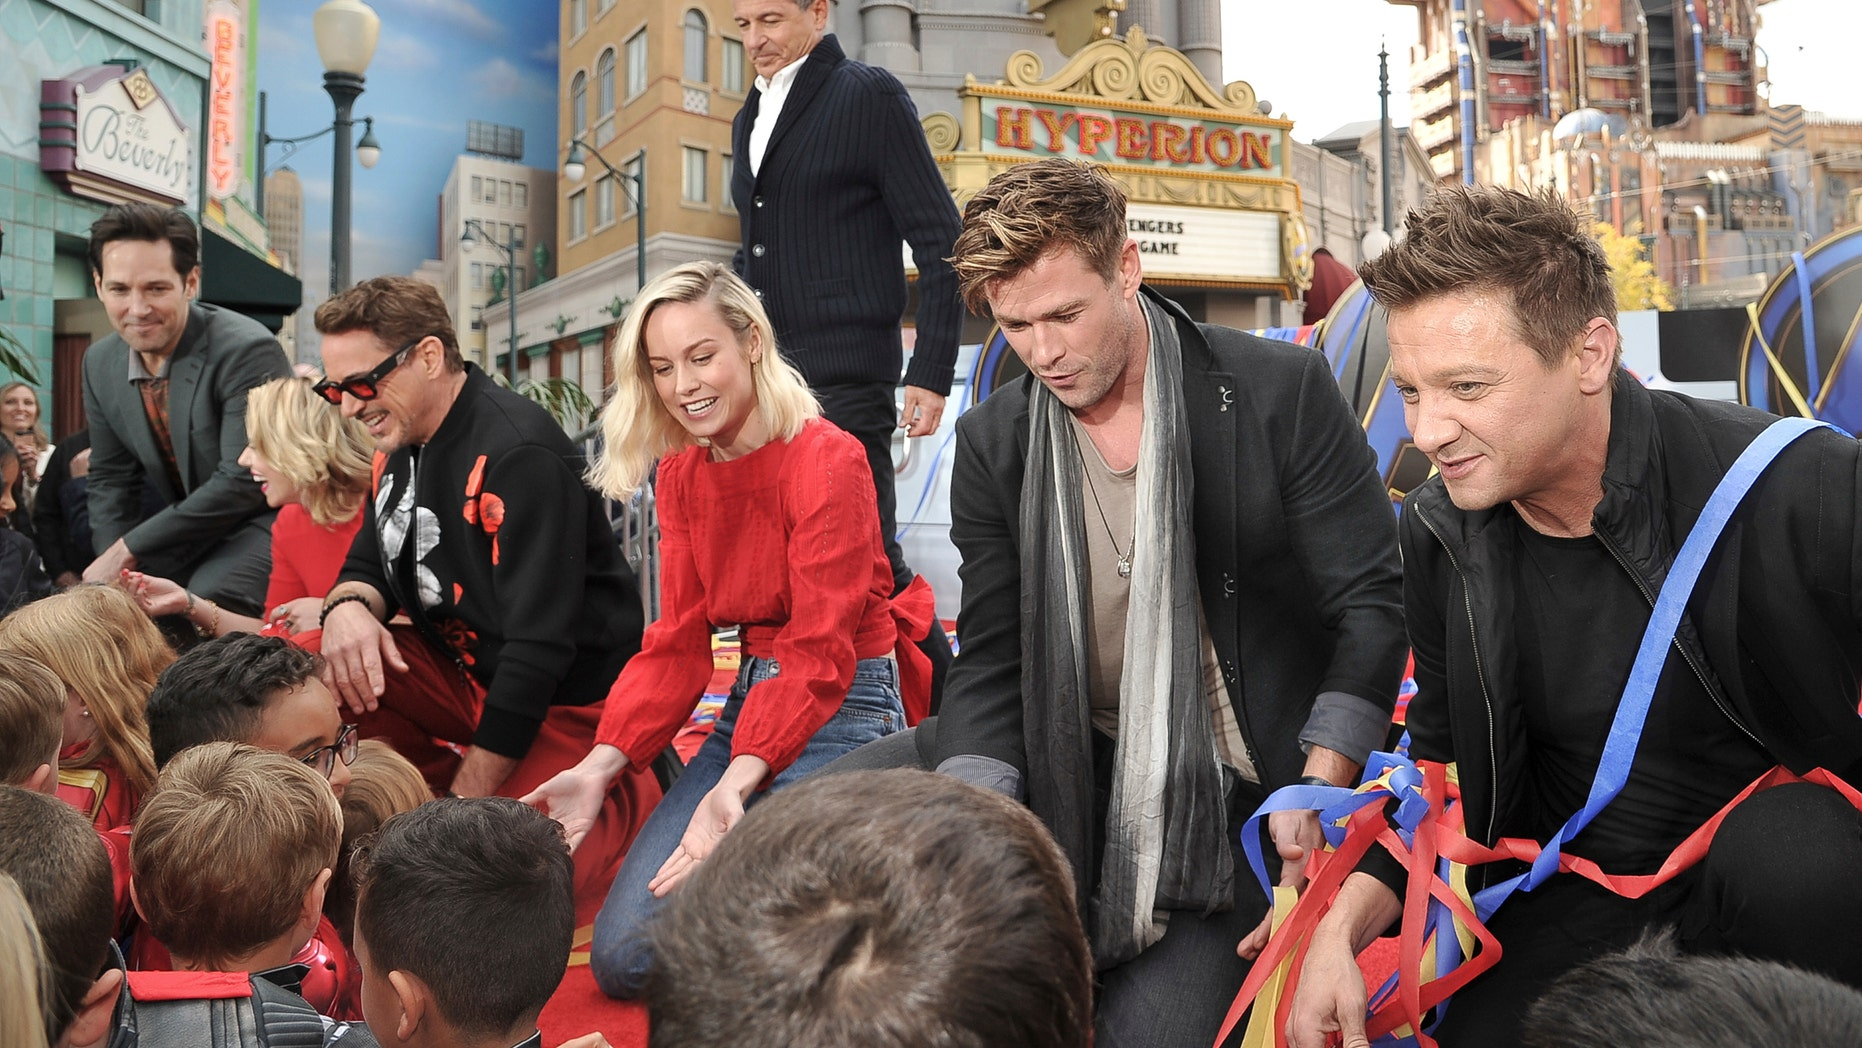 """""""Avengers: Endgame"""" cast members Paul Rudd, left, Scarlett Johansson, Robert Downey Jr., Brie Larson, Chris Hemsworth and Jeremy Renner appear with Disney CEO Robert Iger, background center, at an event announcing the Universe Unites Charity at Disney California Adventure Park on Friday in Anaheim, Calif."""